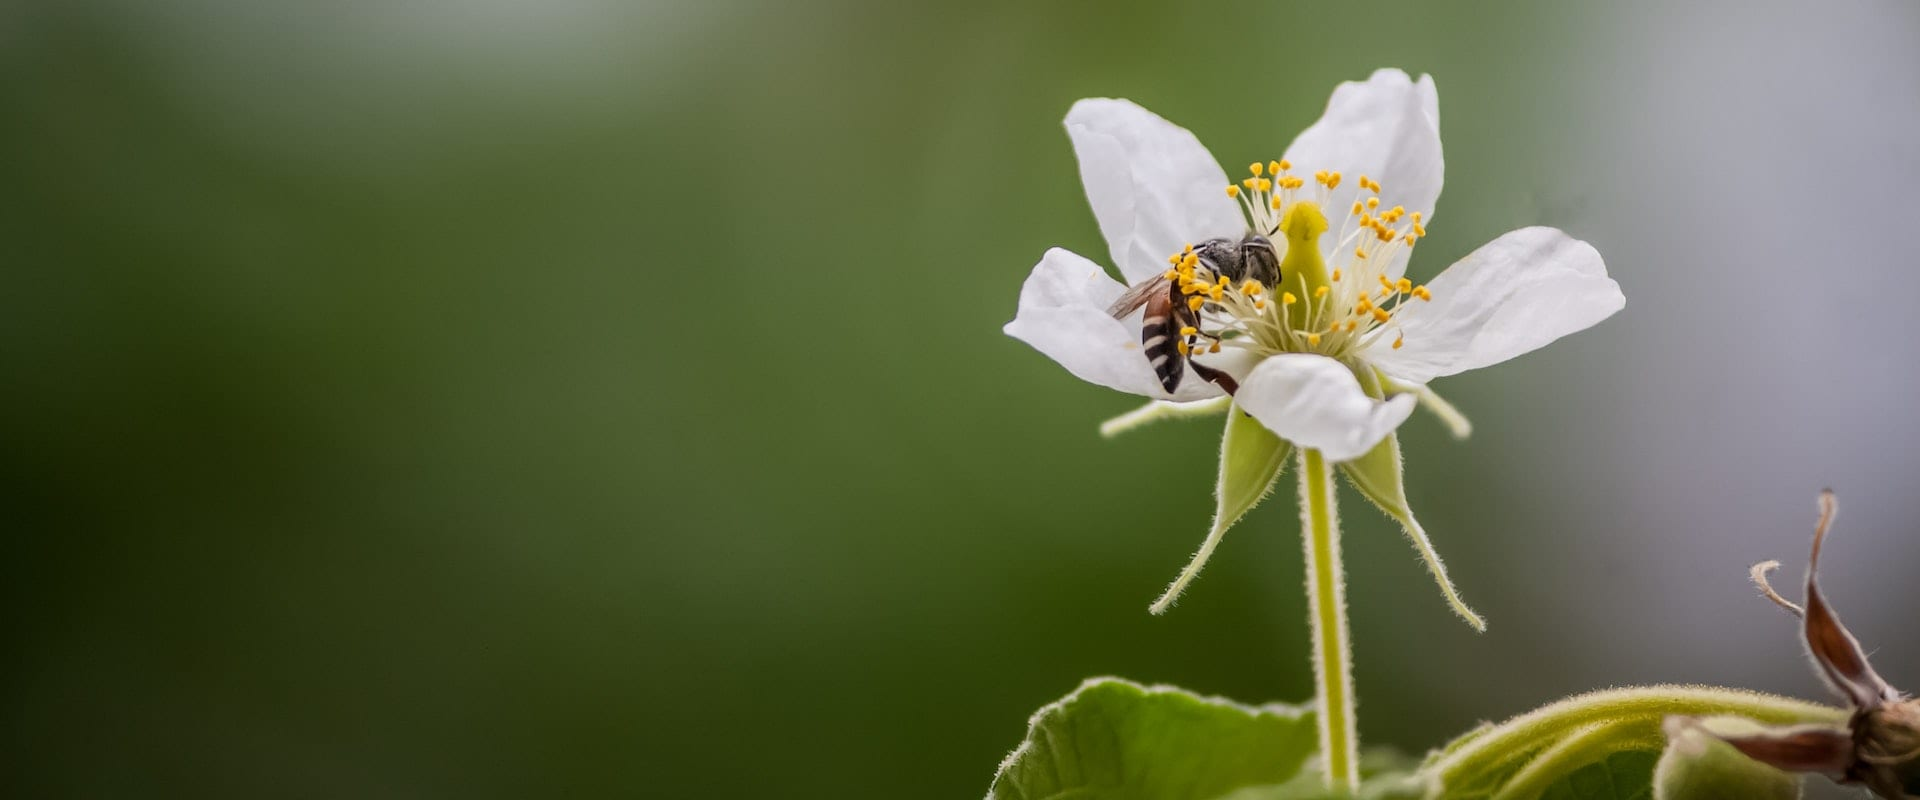 Bees with White Flower